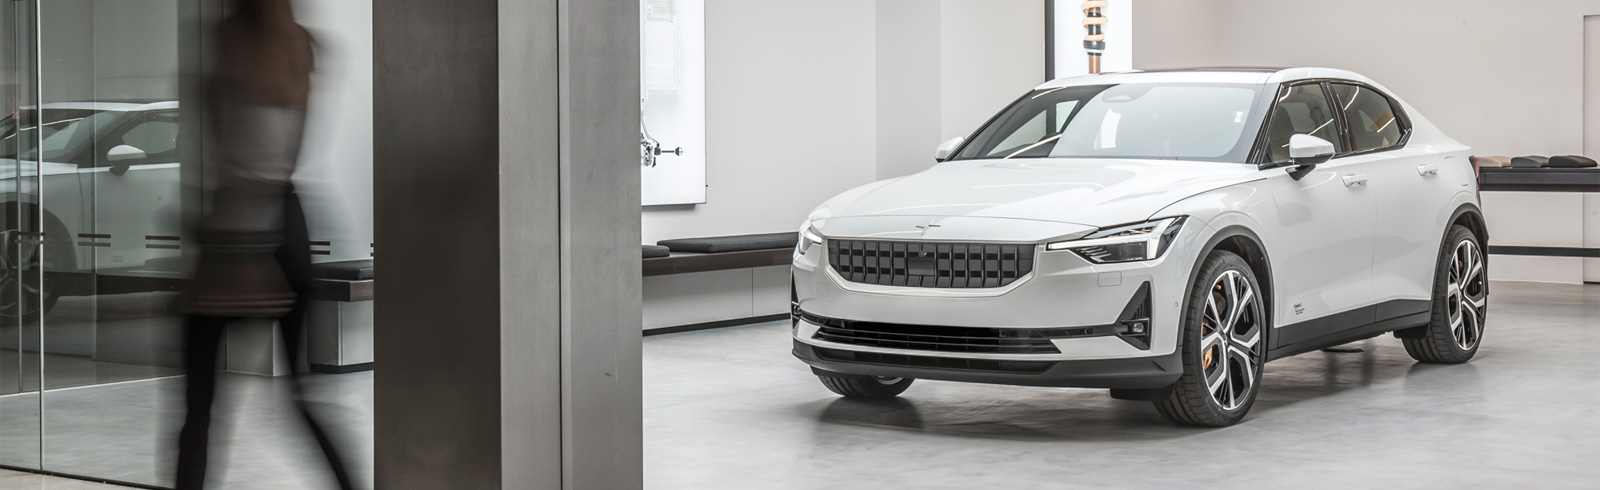 Polestar Cars to Open 15 New US Showrooms in 2021